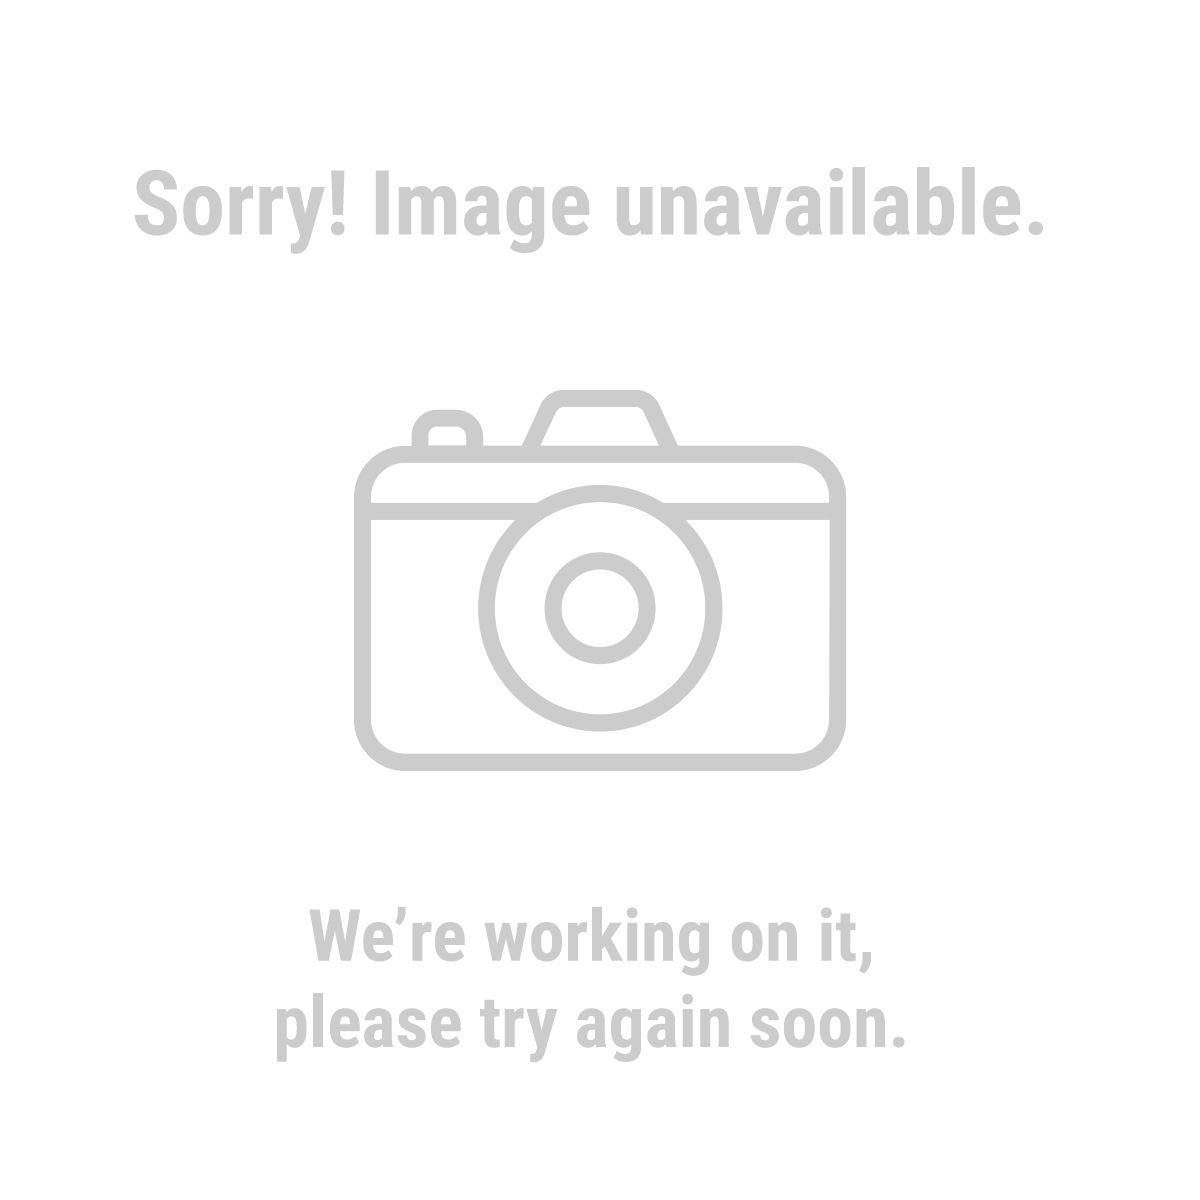 HFT 61766 9 ft. 4 in. x 11 ft. 4 in. Camouflage All Purpose/Weather Resistant Tarp